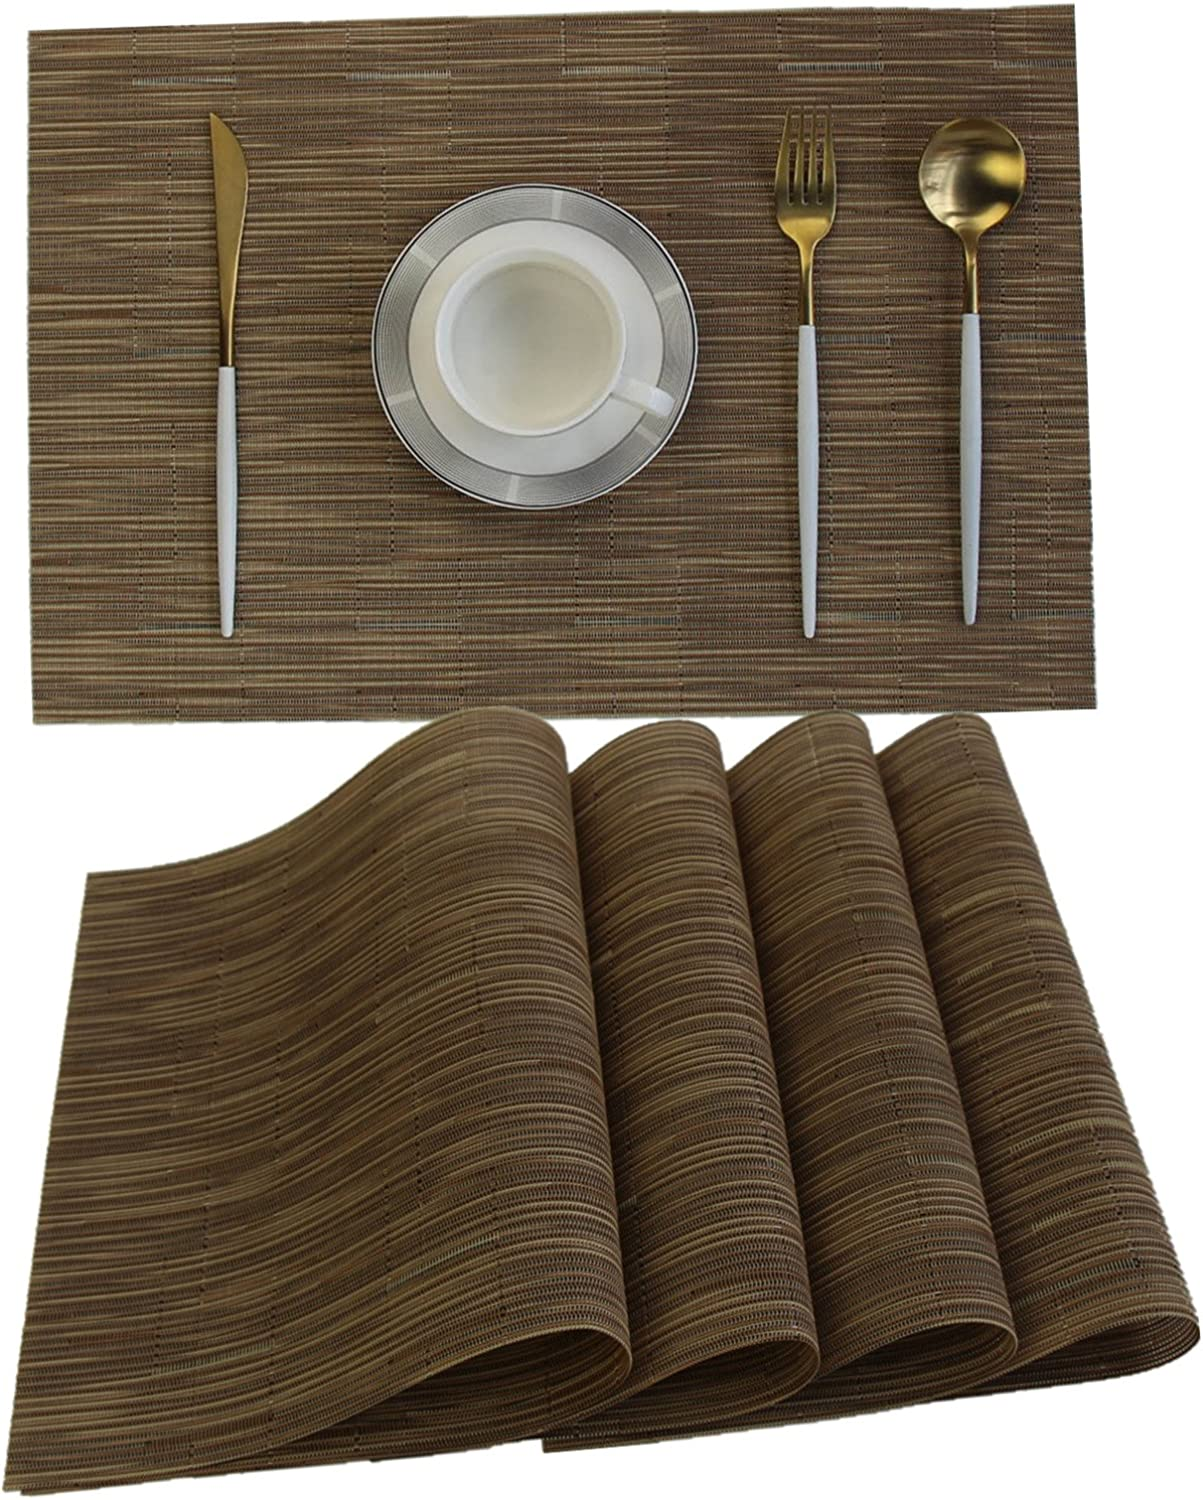 """WANGCHAO Placemats placemat 12""""X18"""" Set of 6 for Dining Table Washable Woven Vinyl Placemat Non-Slip Heat Resistant Kitchen Table Mats Easy to Clean (Rectangular Placemats, Coffee2)"""